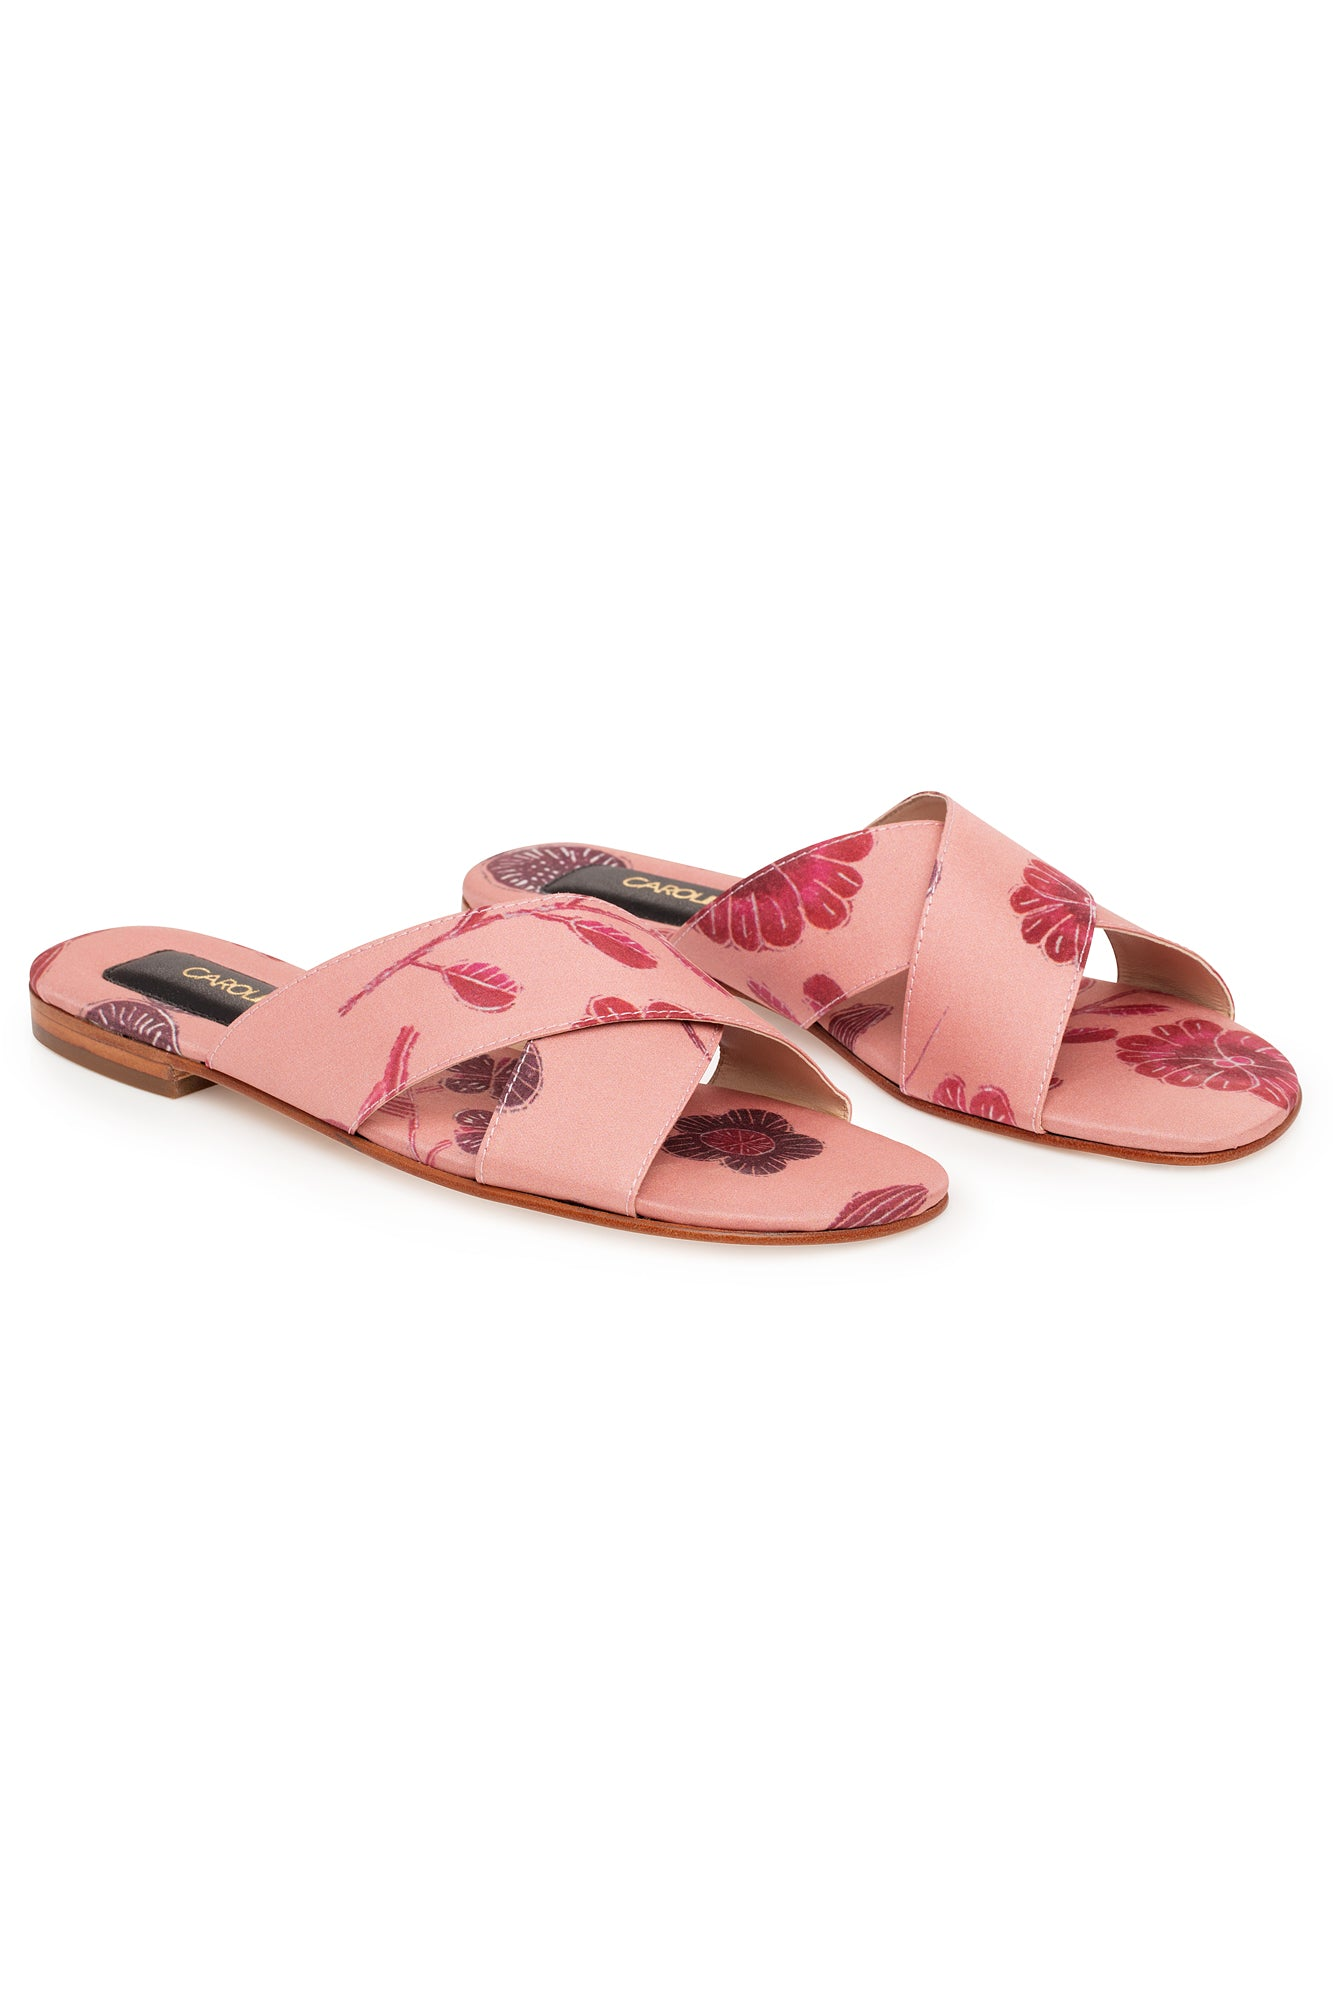 Carolina K Cross Sandal in Pink Tea Flowers